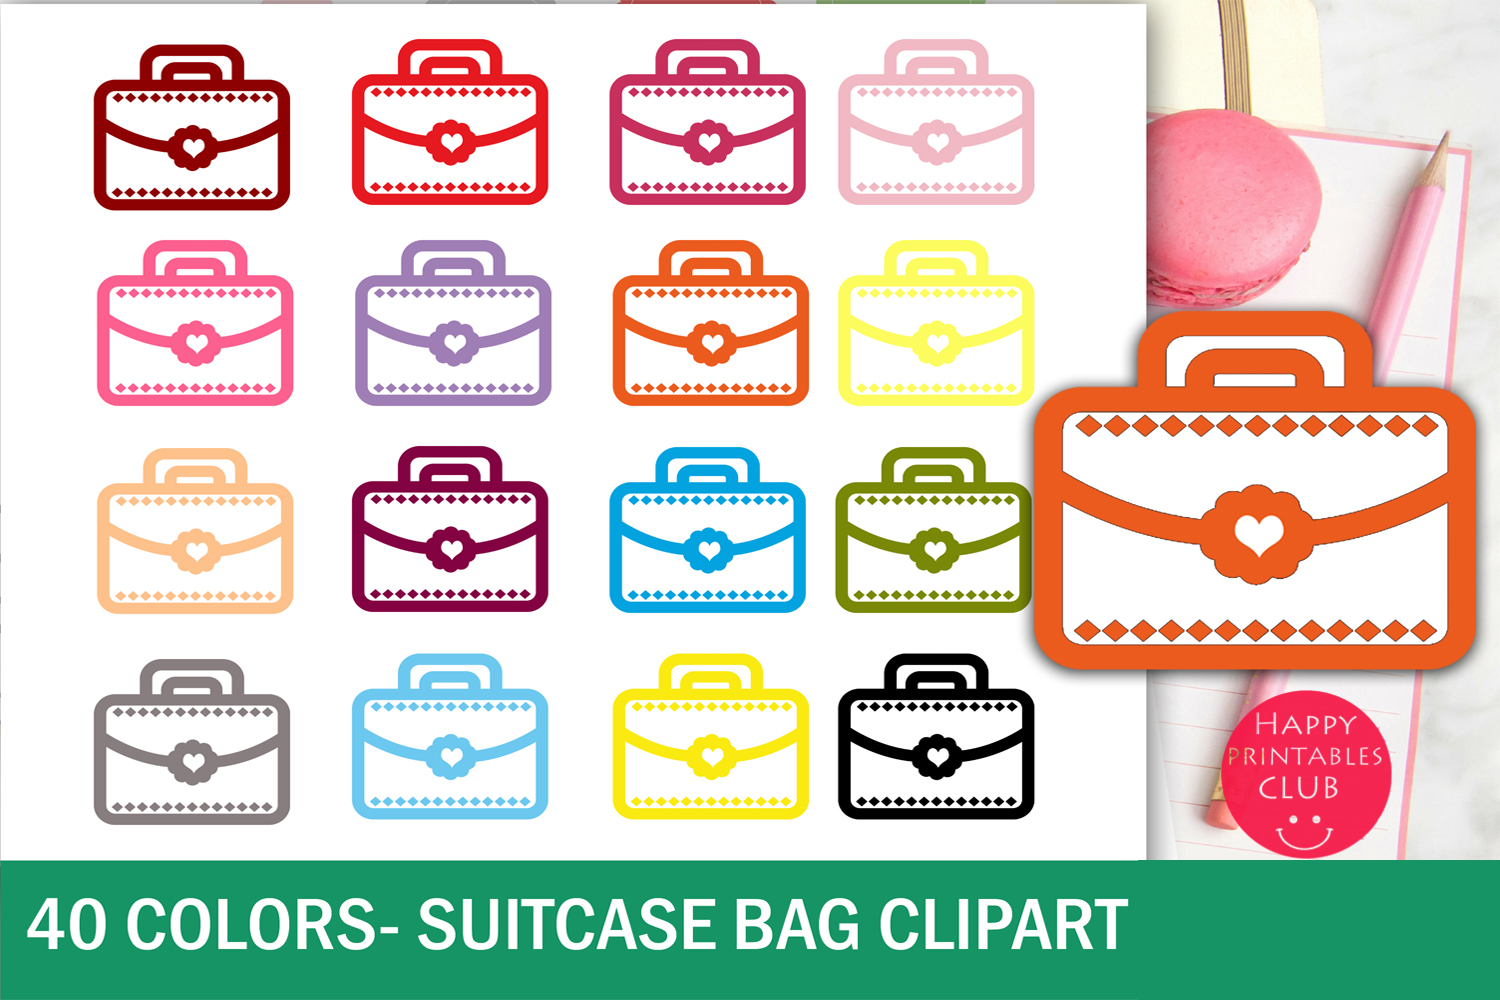 40 Colorful Suitcase-Bag Clipart example image 1